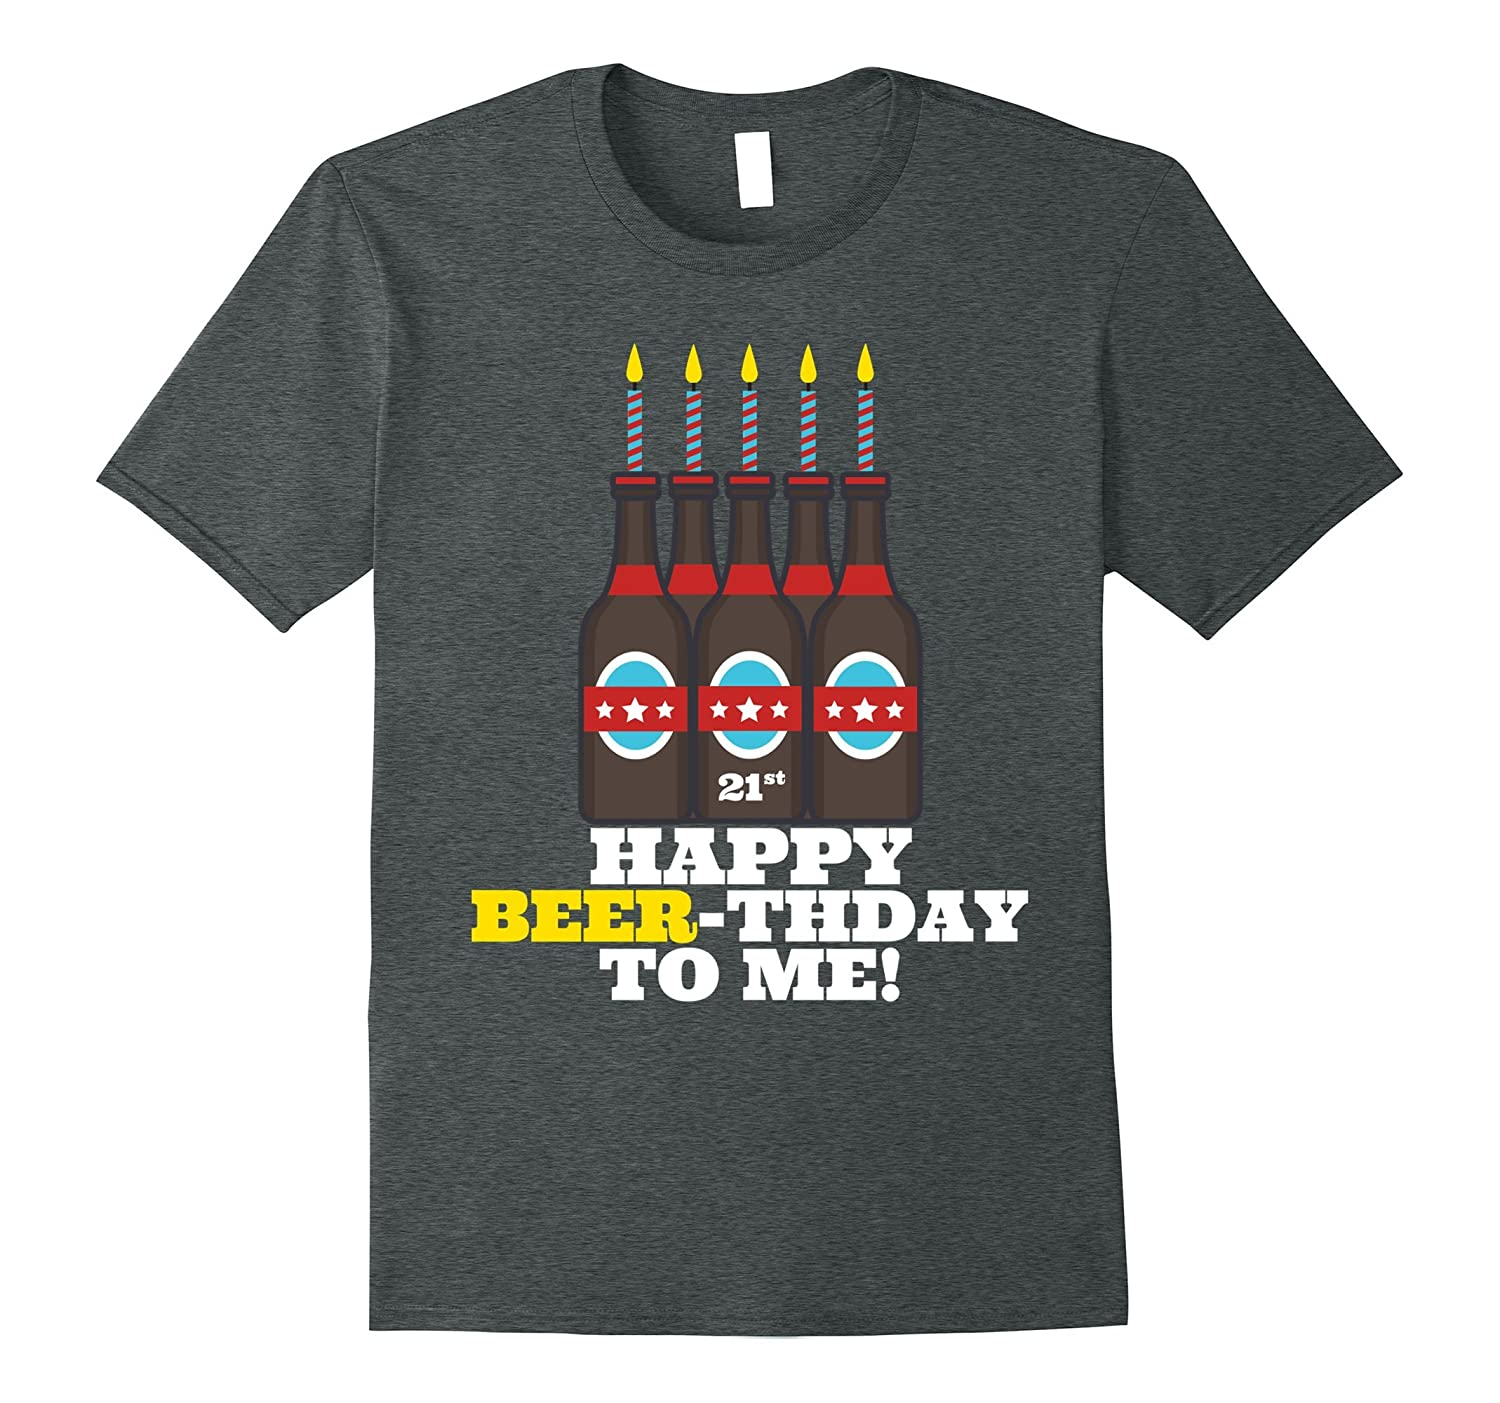 505d505f7 Happy Beer-thday to Me! T Shirt for 21st Birthday-CL – Colamaga